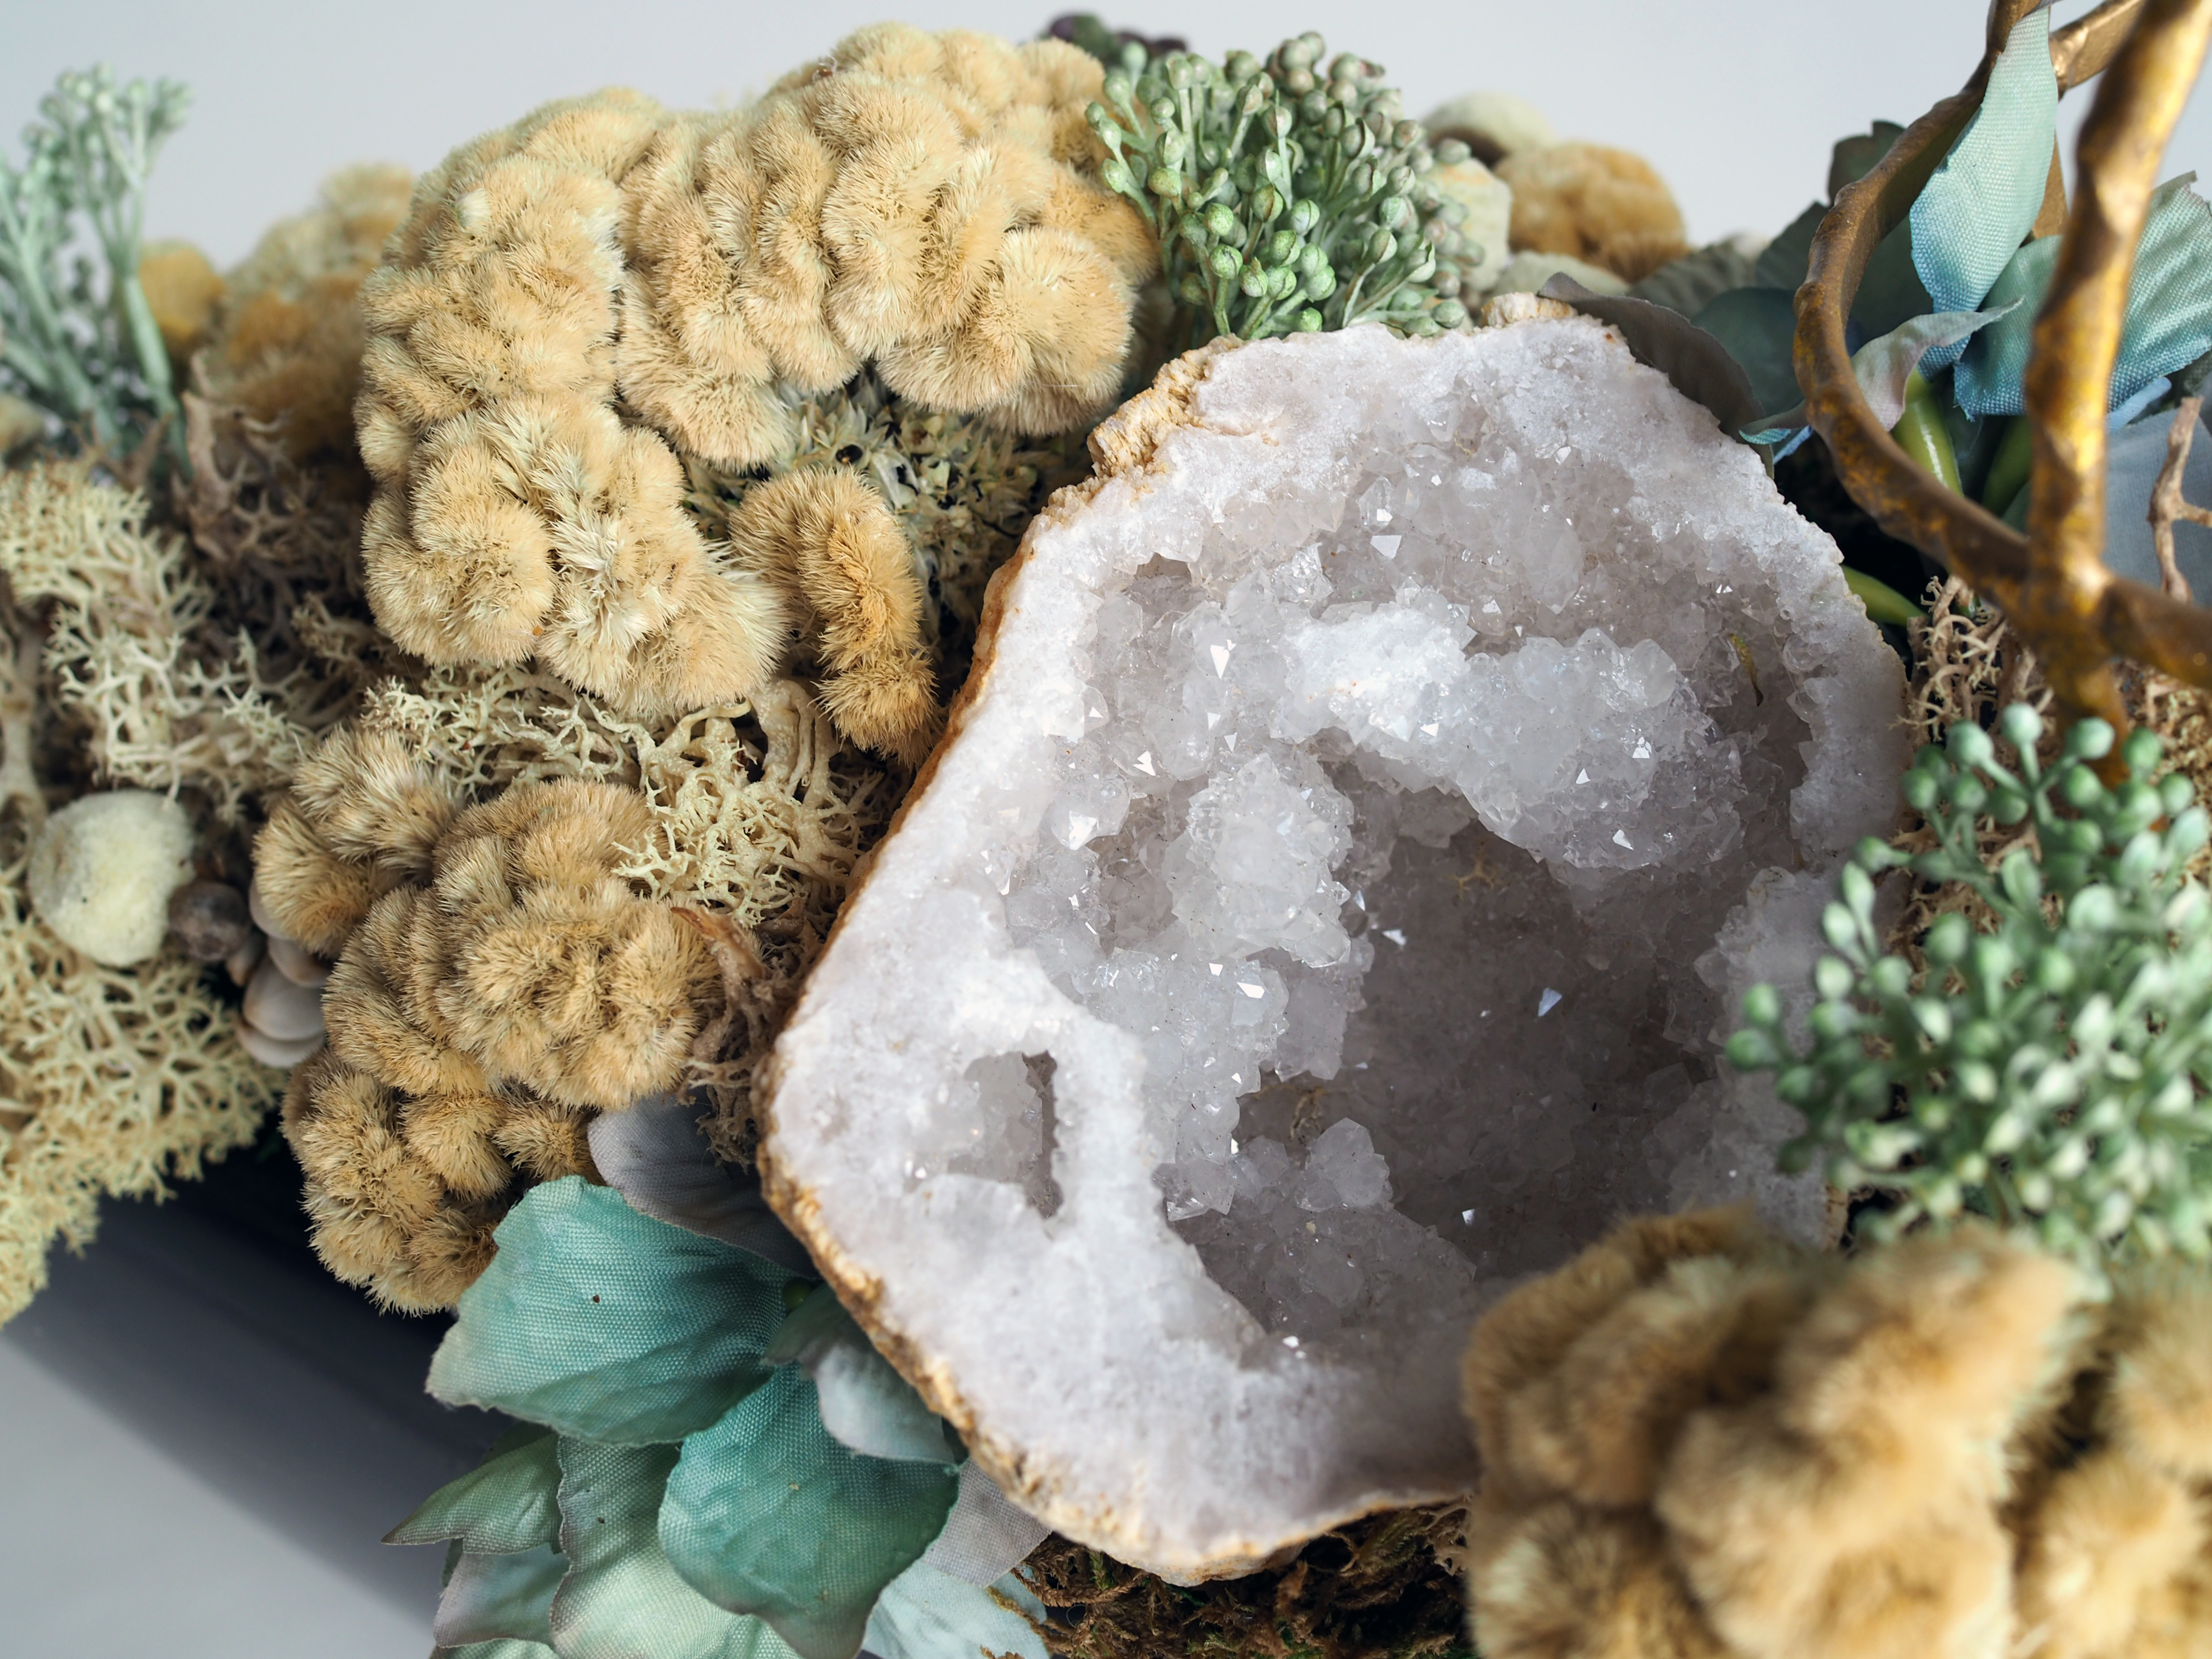 Geodes in a centerpiece Arrangement